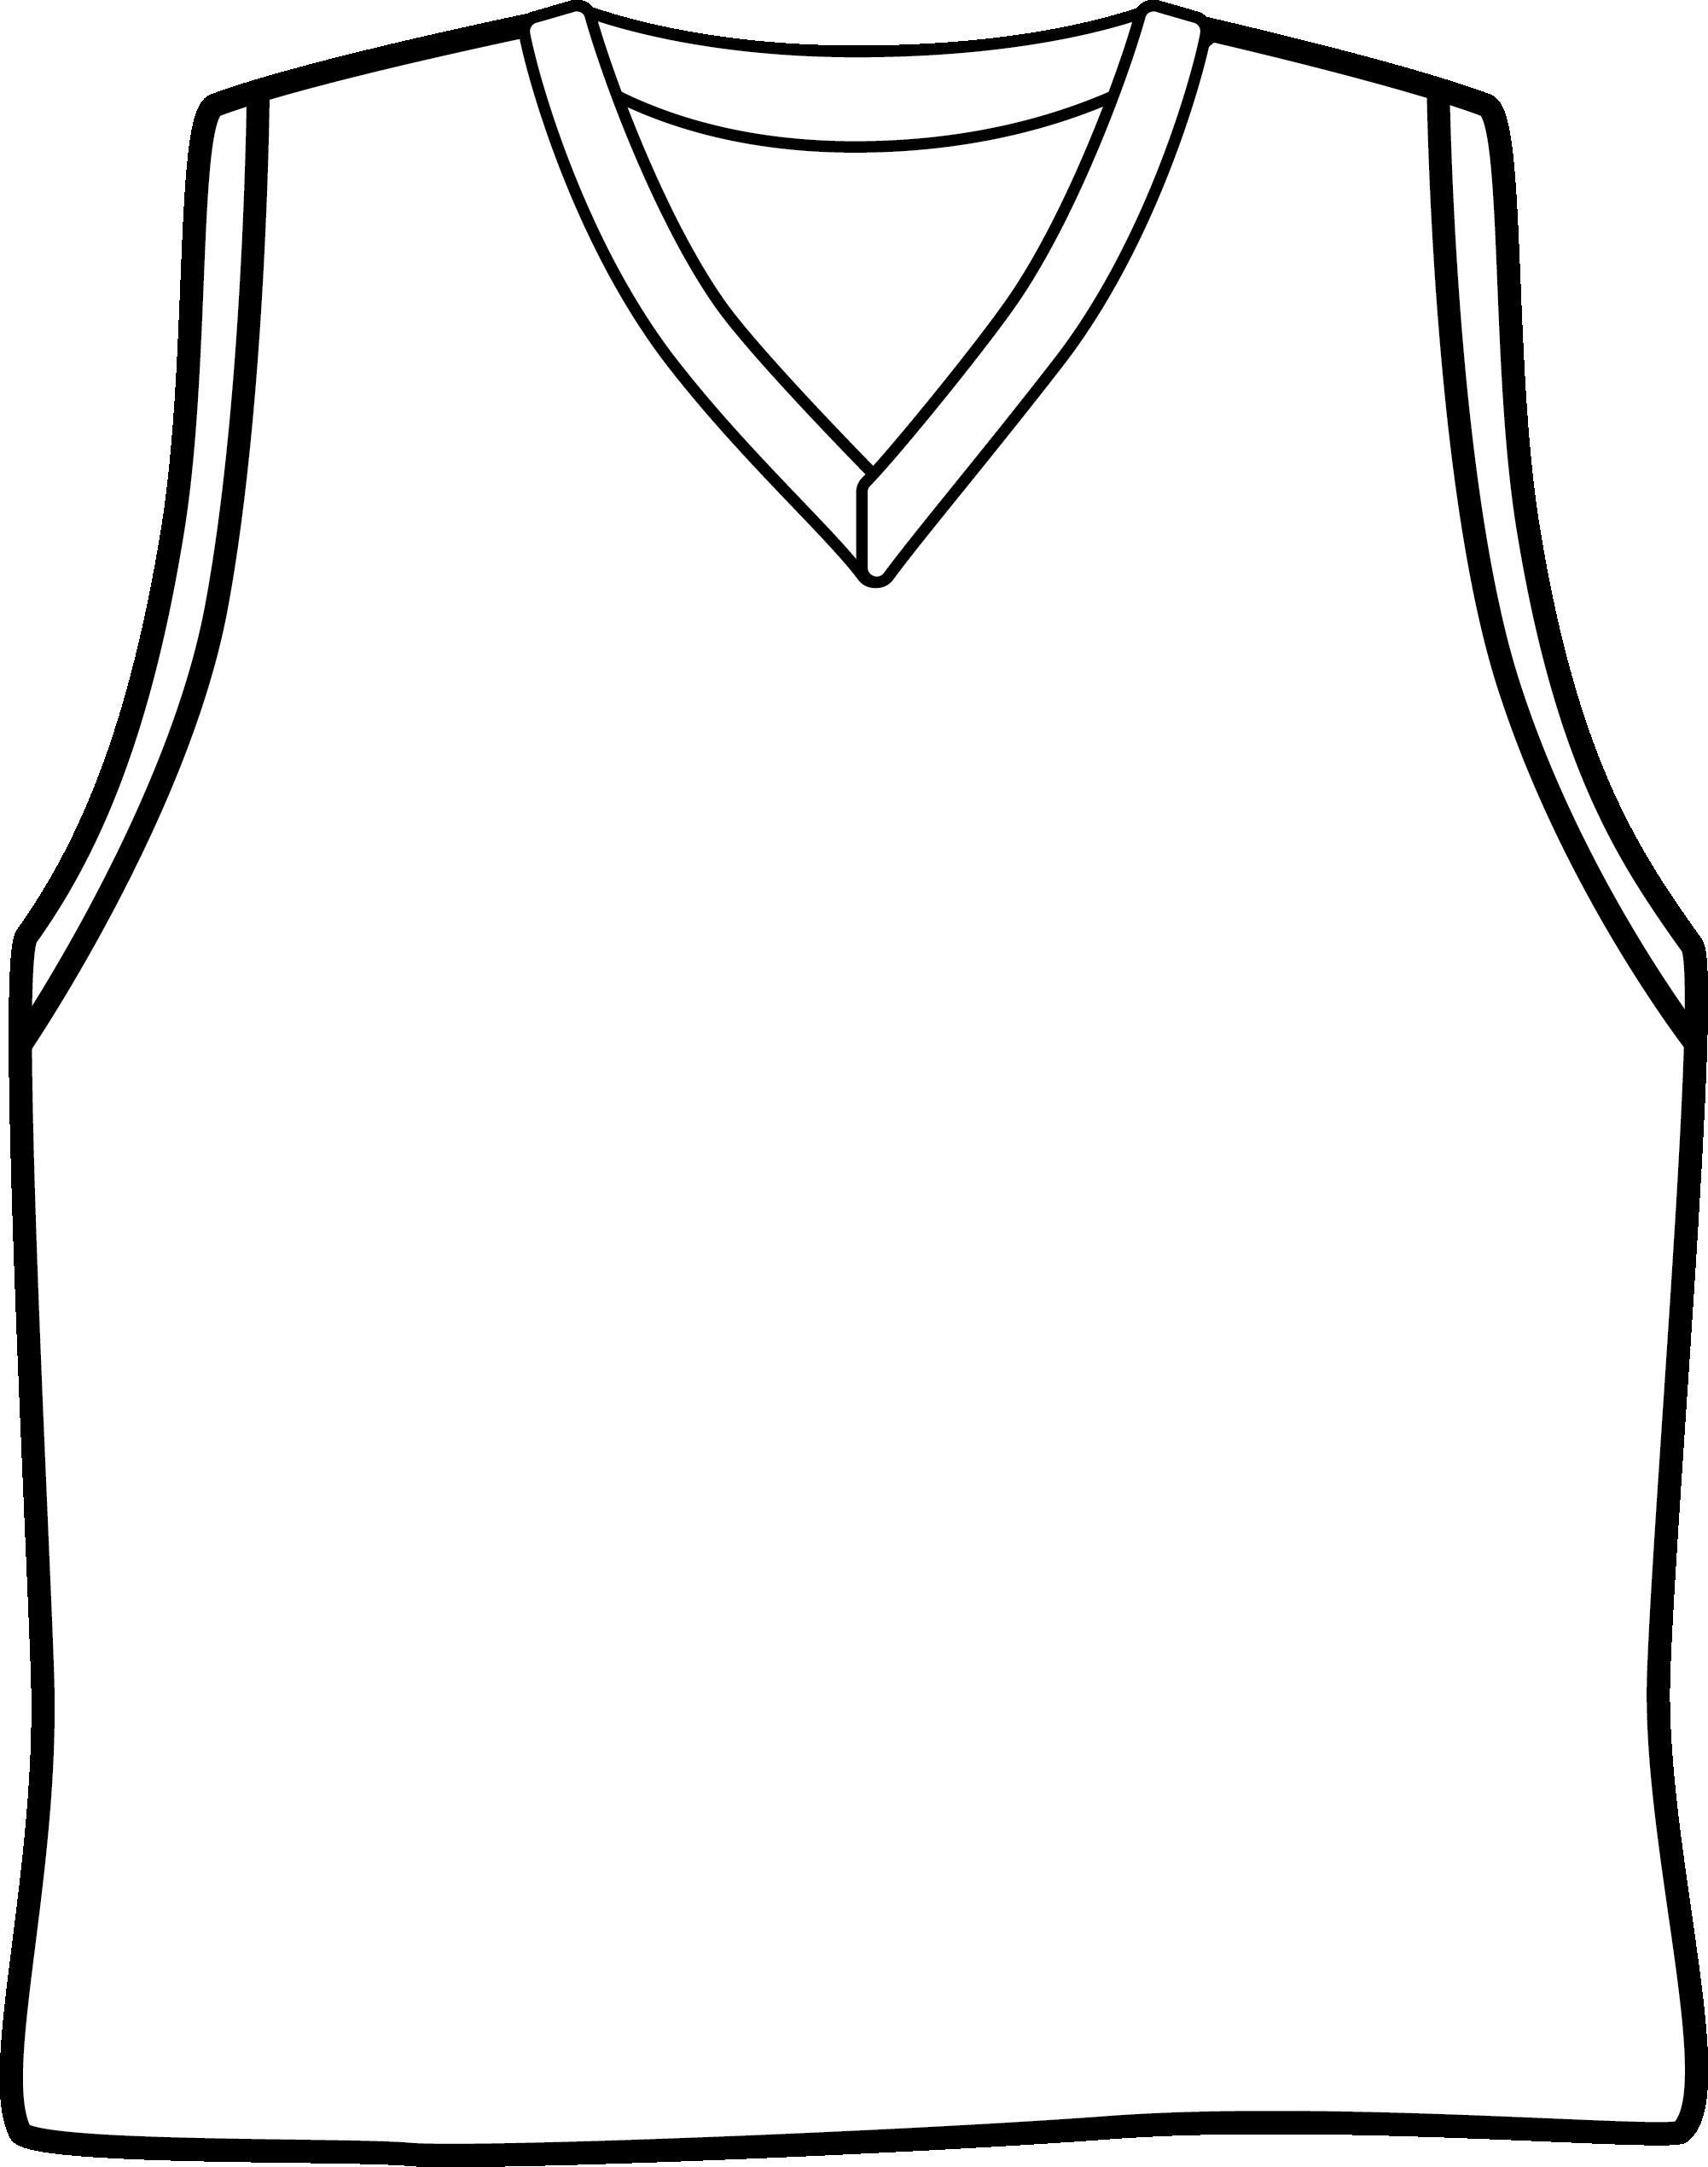 Basketball Jersey Drawing At Getdrawings